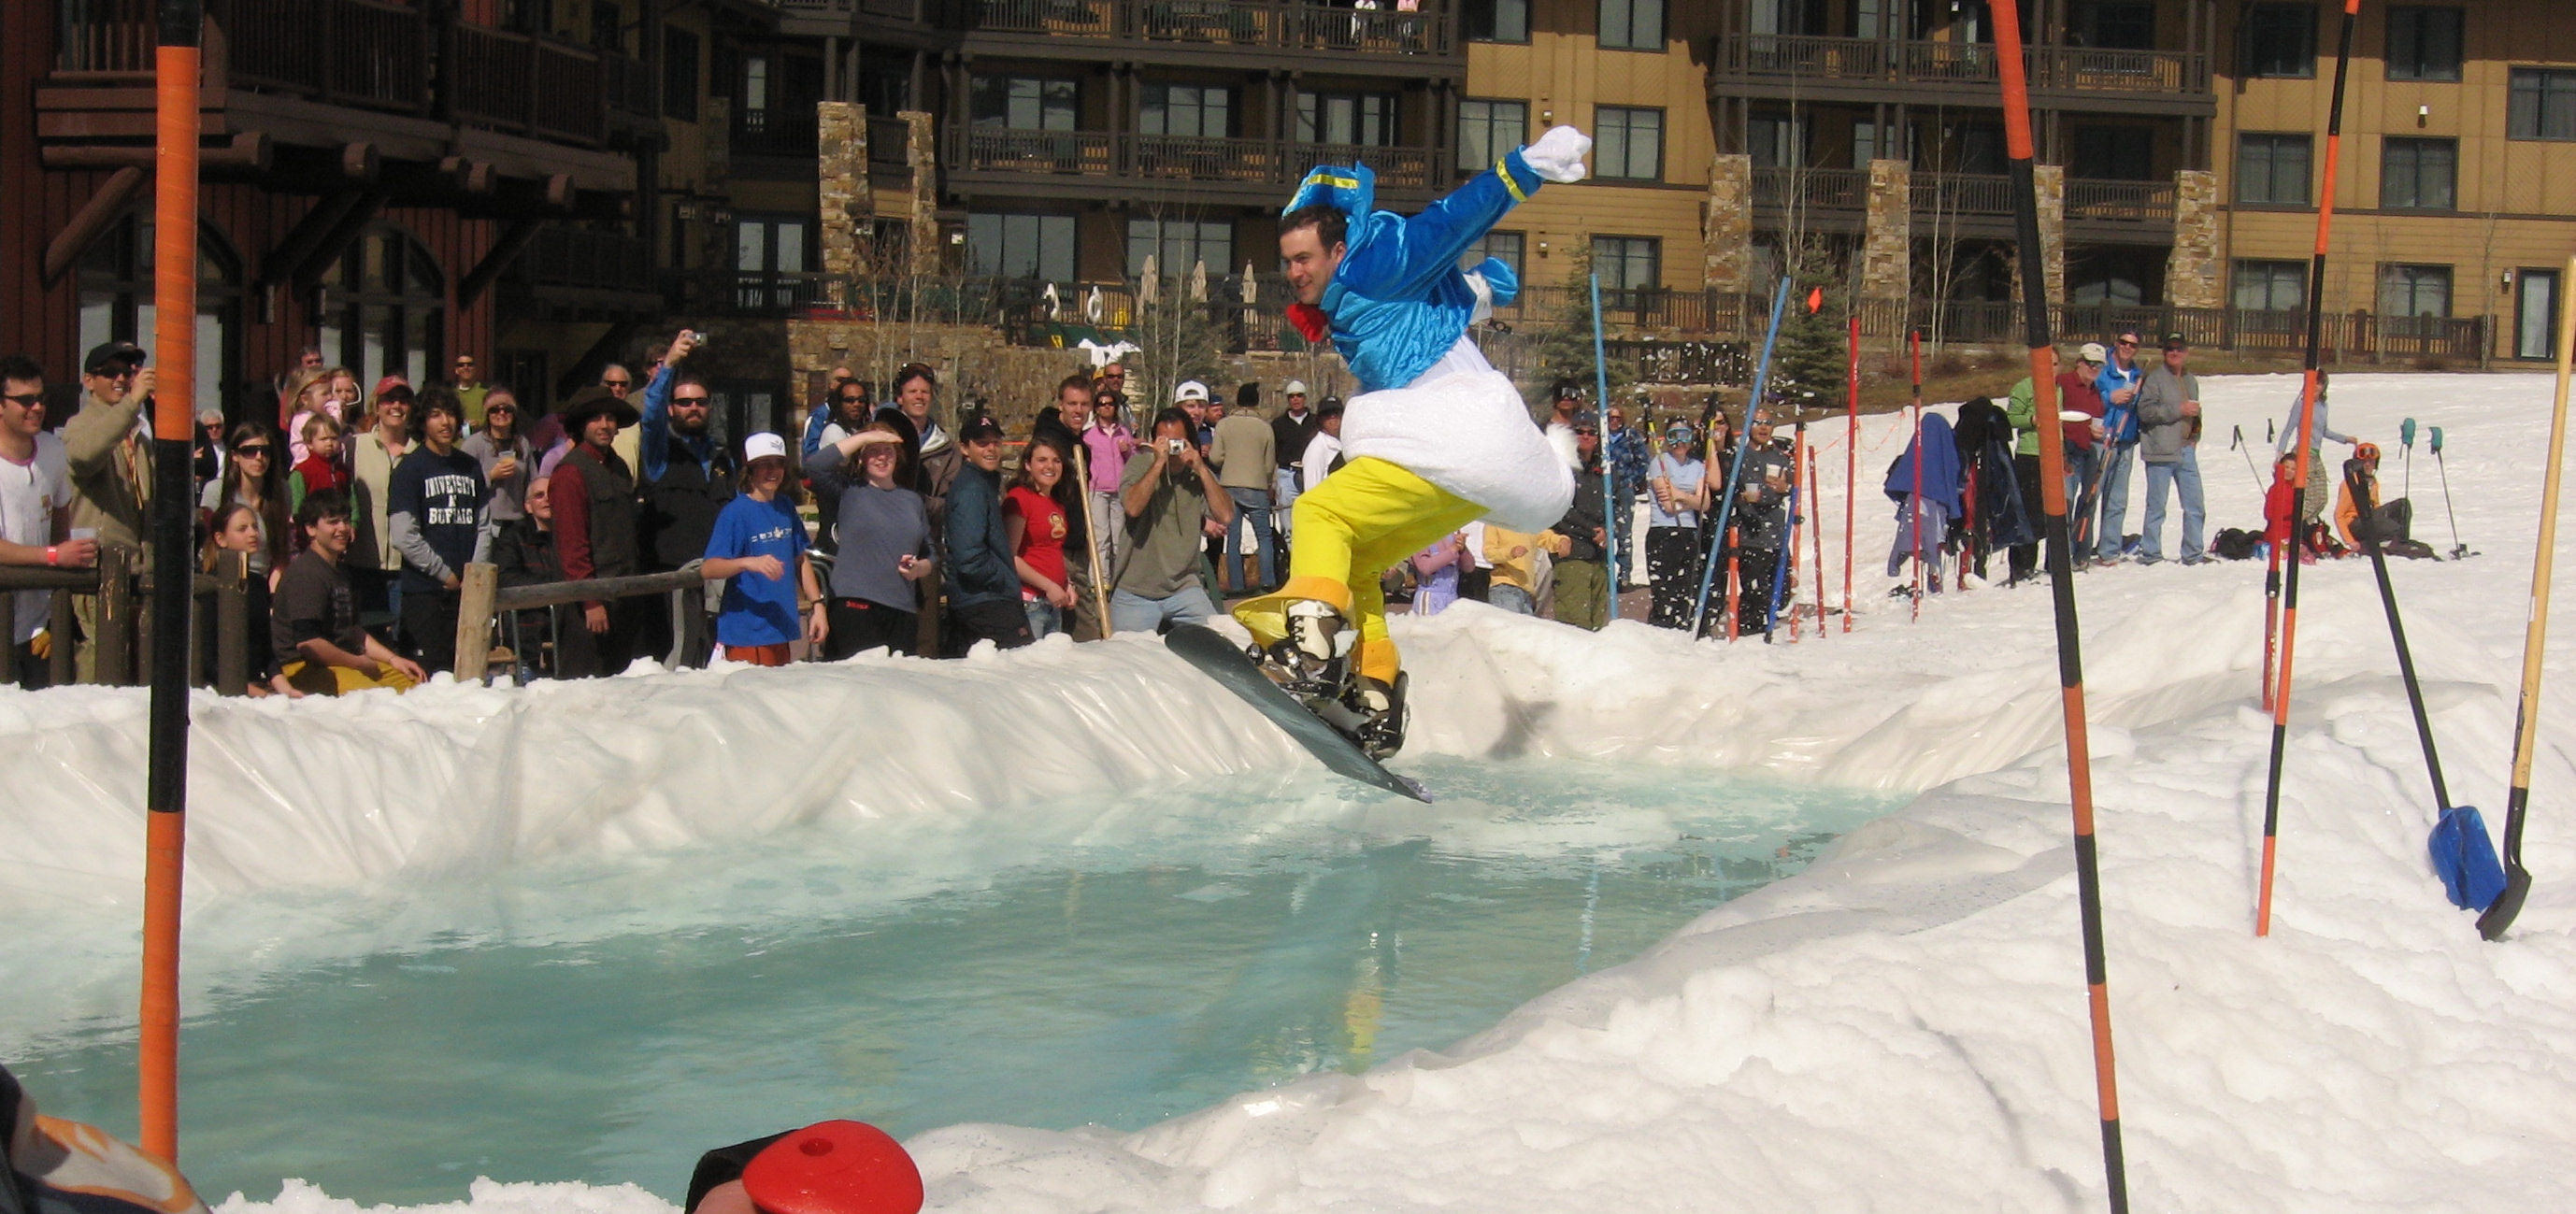 Brian snowboarding in his Donald Duck costume